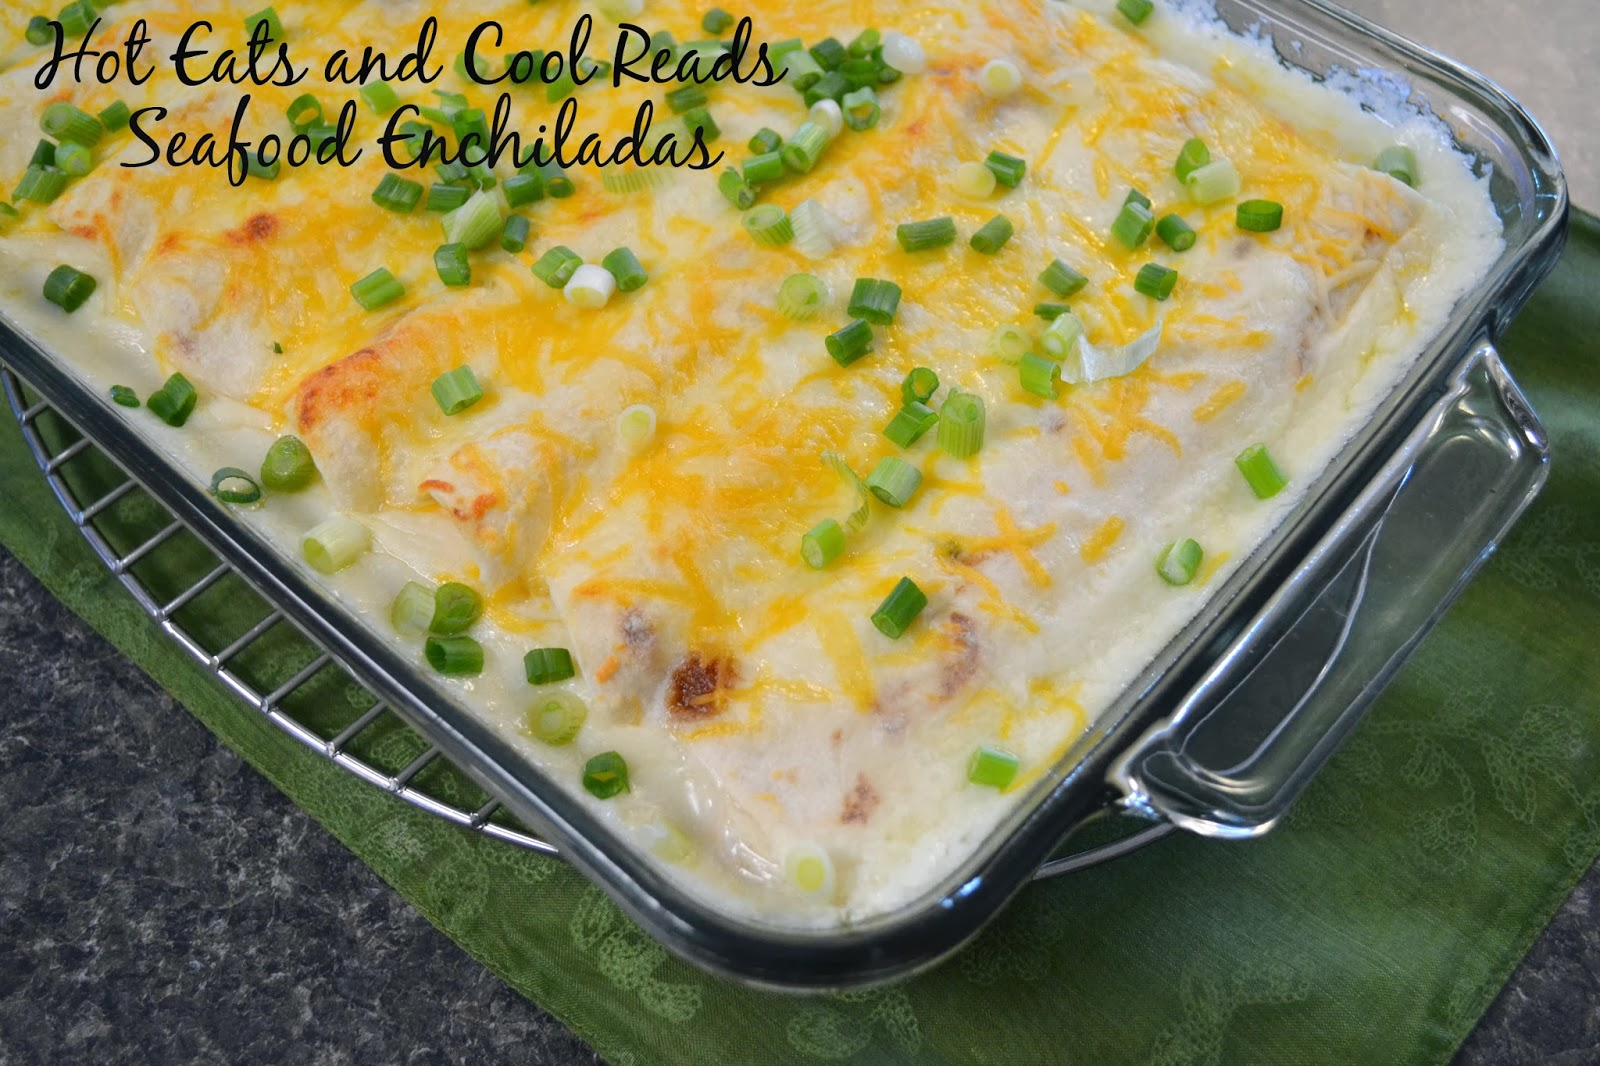 Make your Mexican restaurant favorite at home! So delicious and budget friendly compared to eating out! Shrimp and Crab Seafood Enchiladas Recipe from Hot Eats and Cool Reads!